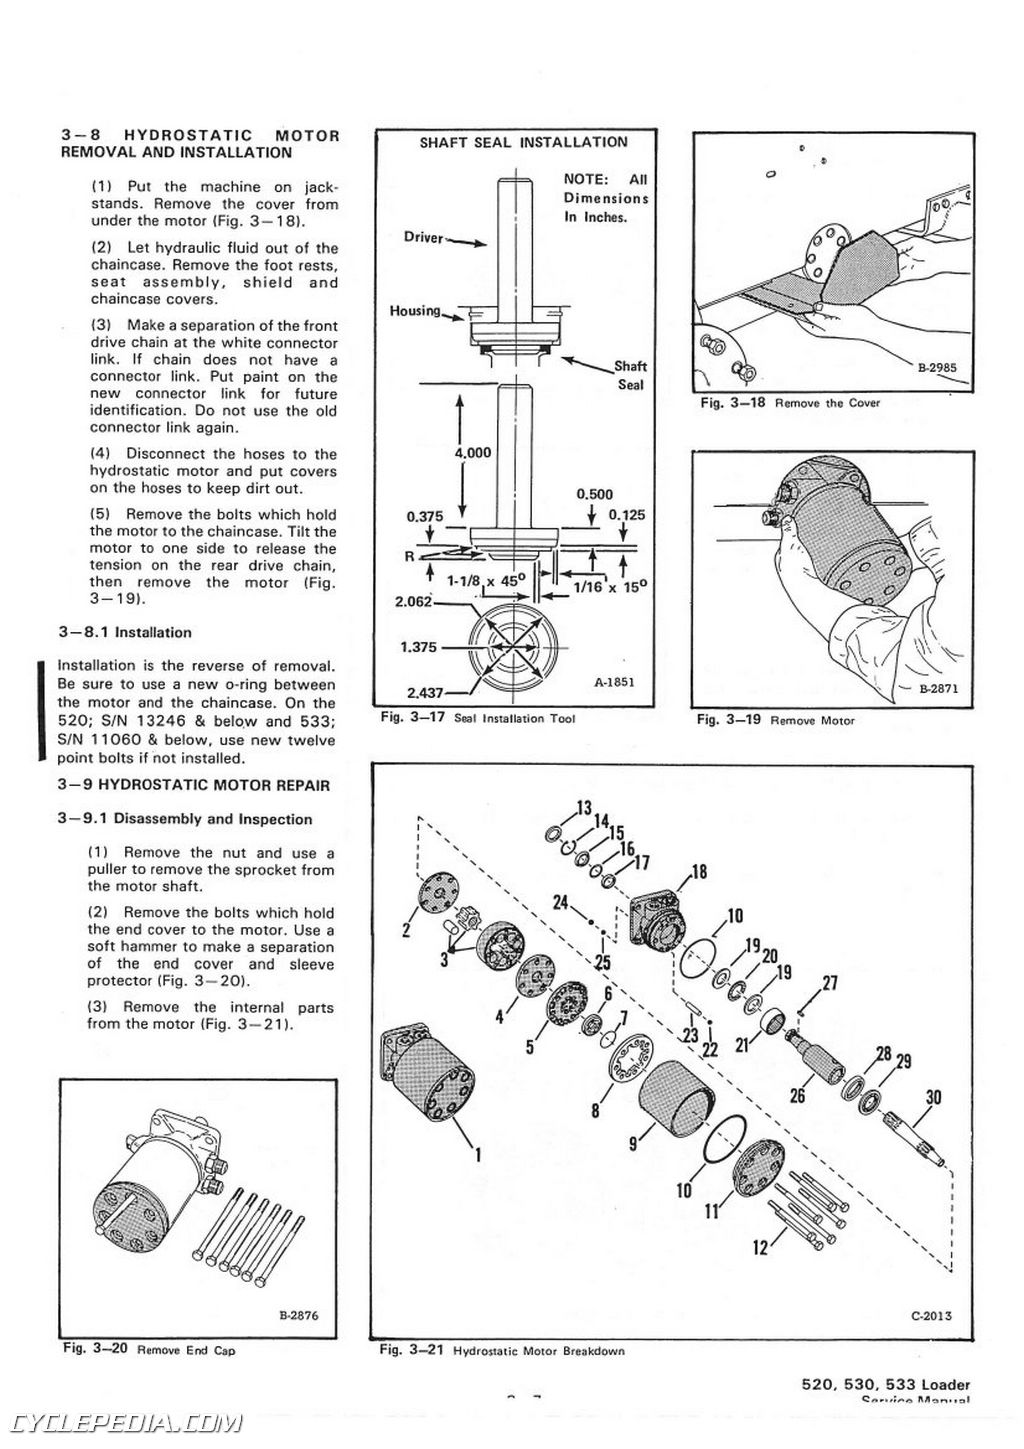 520 Bobcat Hydraulic Hose Diagram Wiring Diagrams Schematics 753 Fuse Box 530 533 Skid Steer Service Manual 610 Parts Excavator